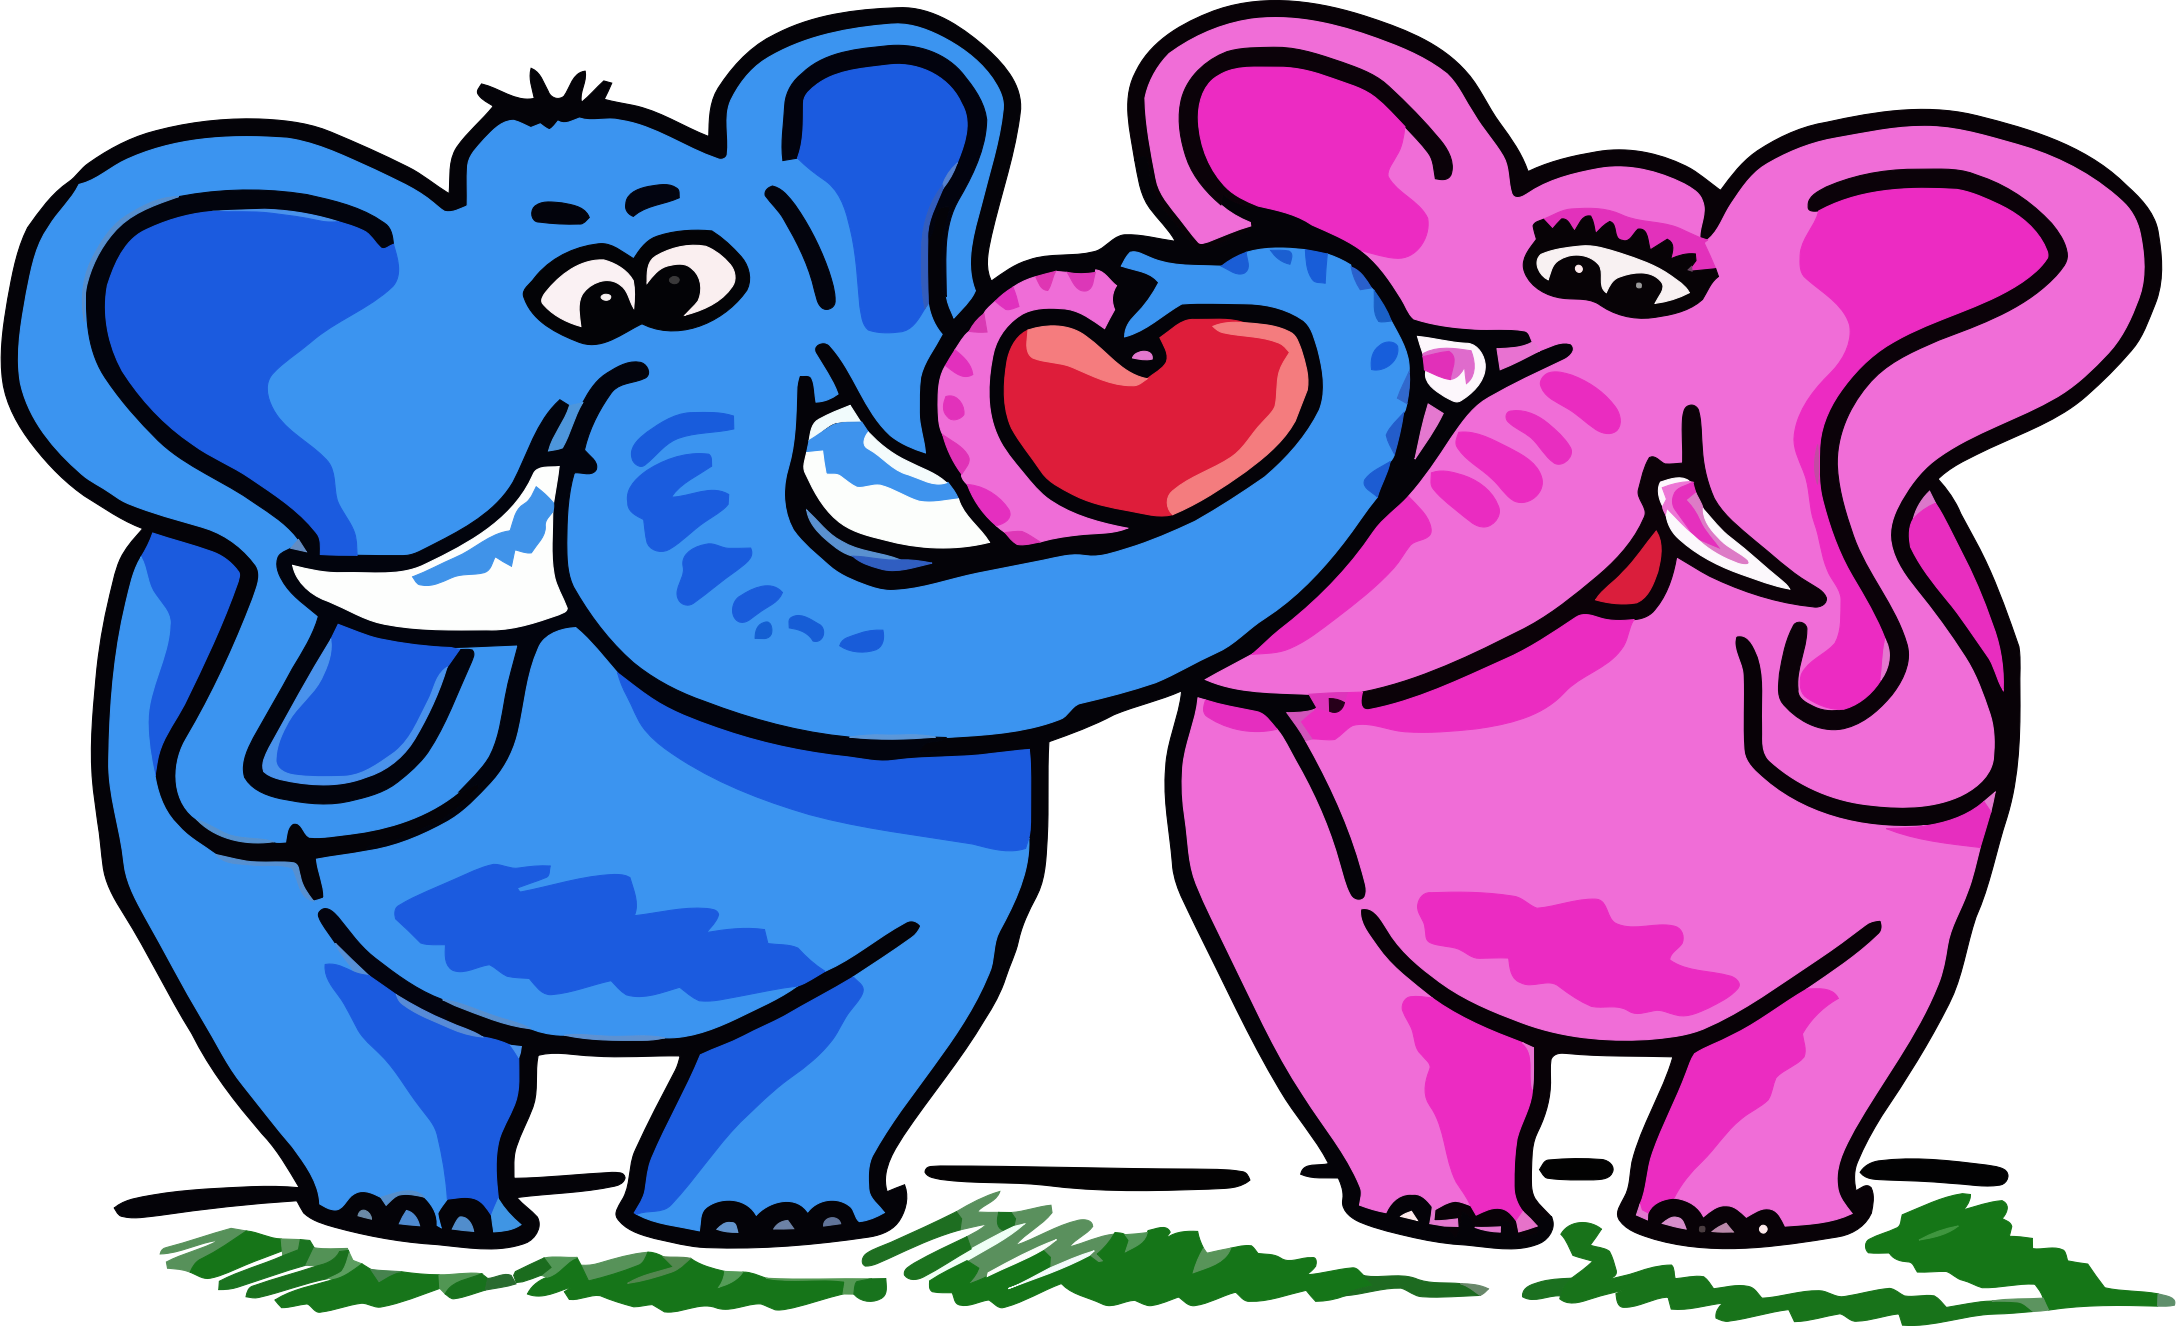 Elephant Couple by GDJ